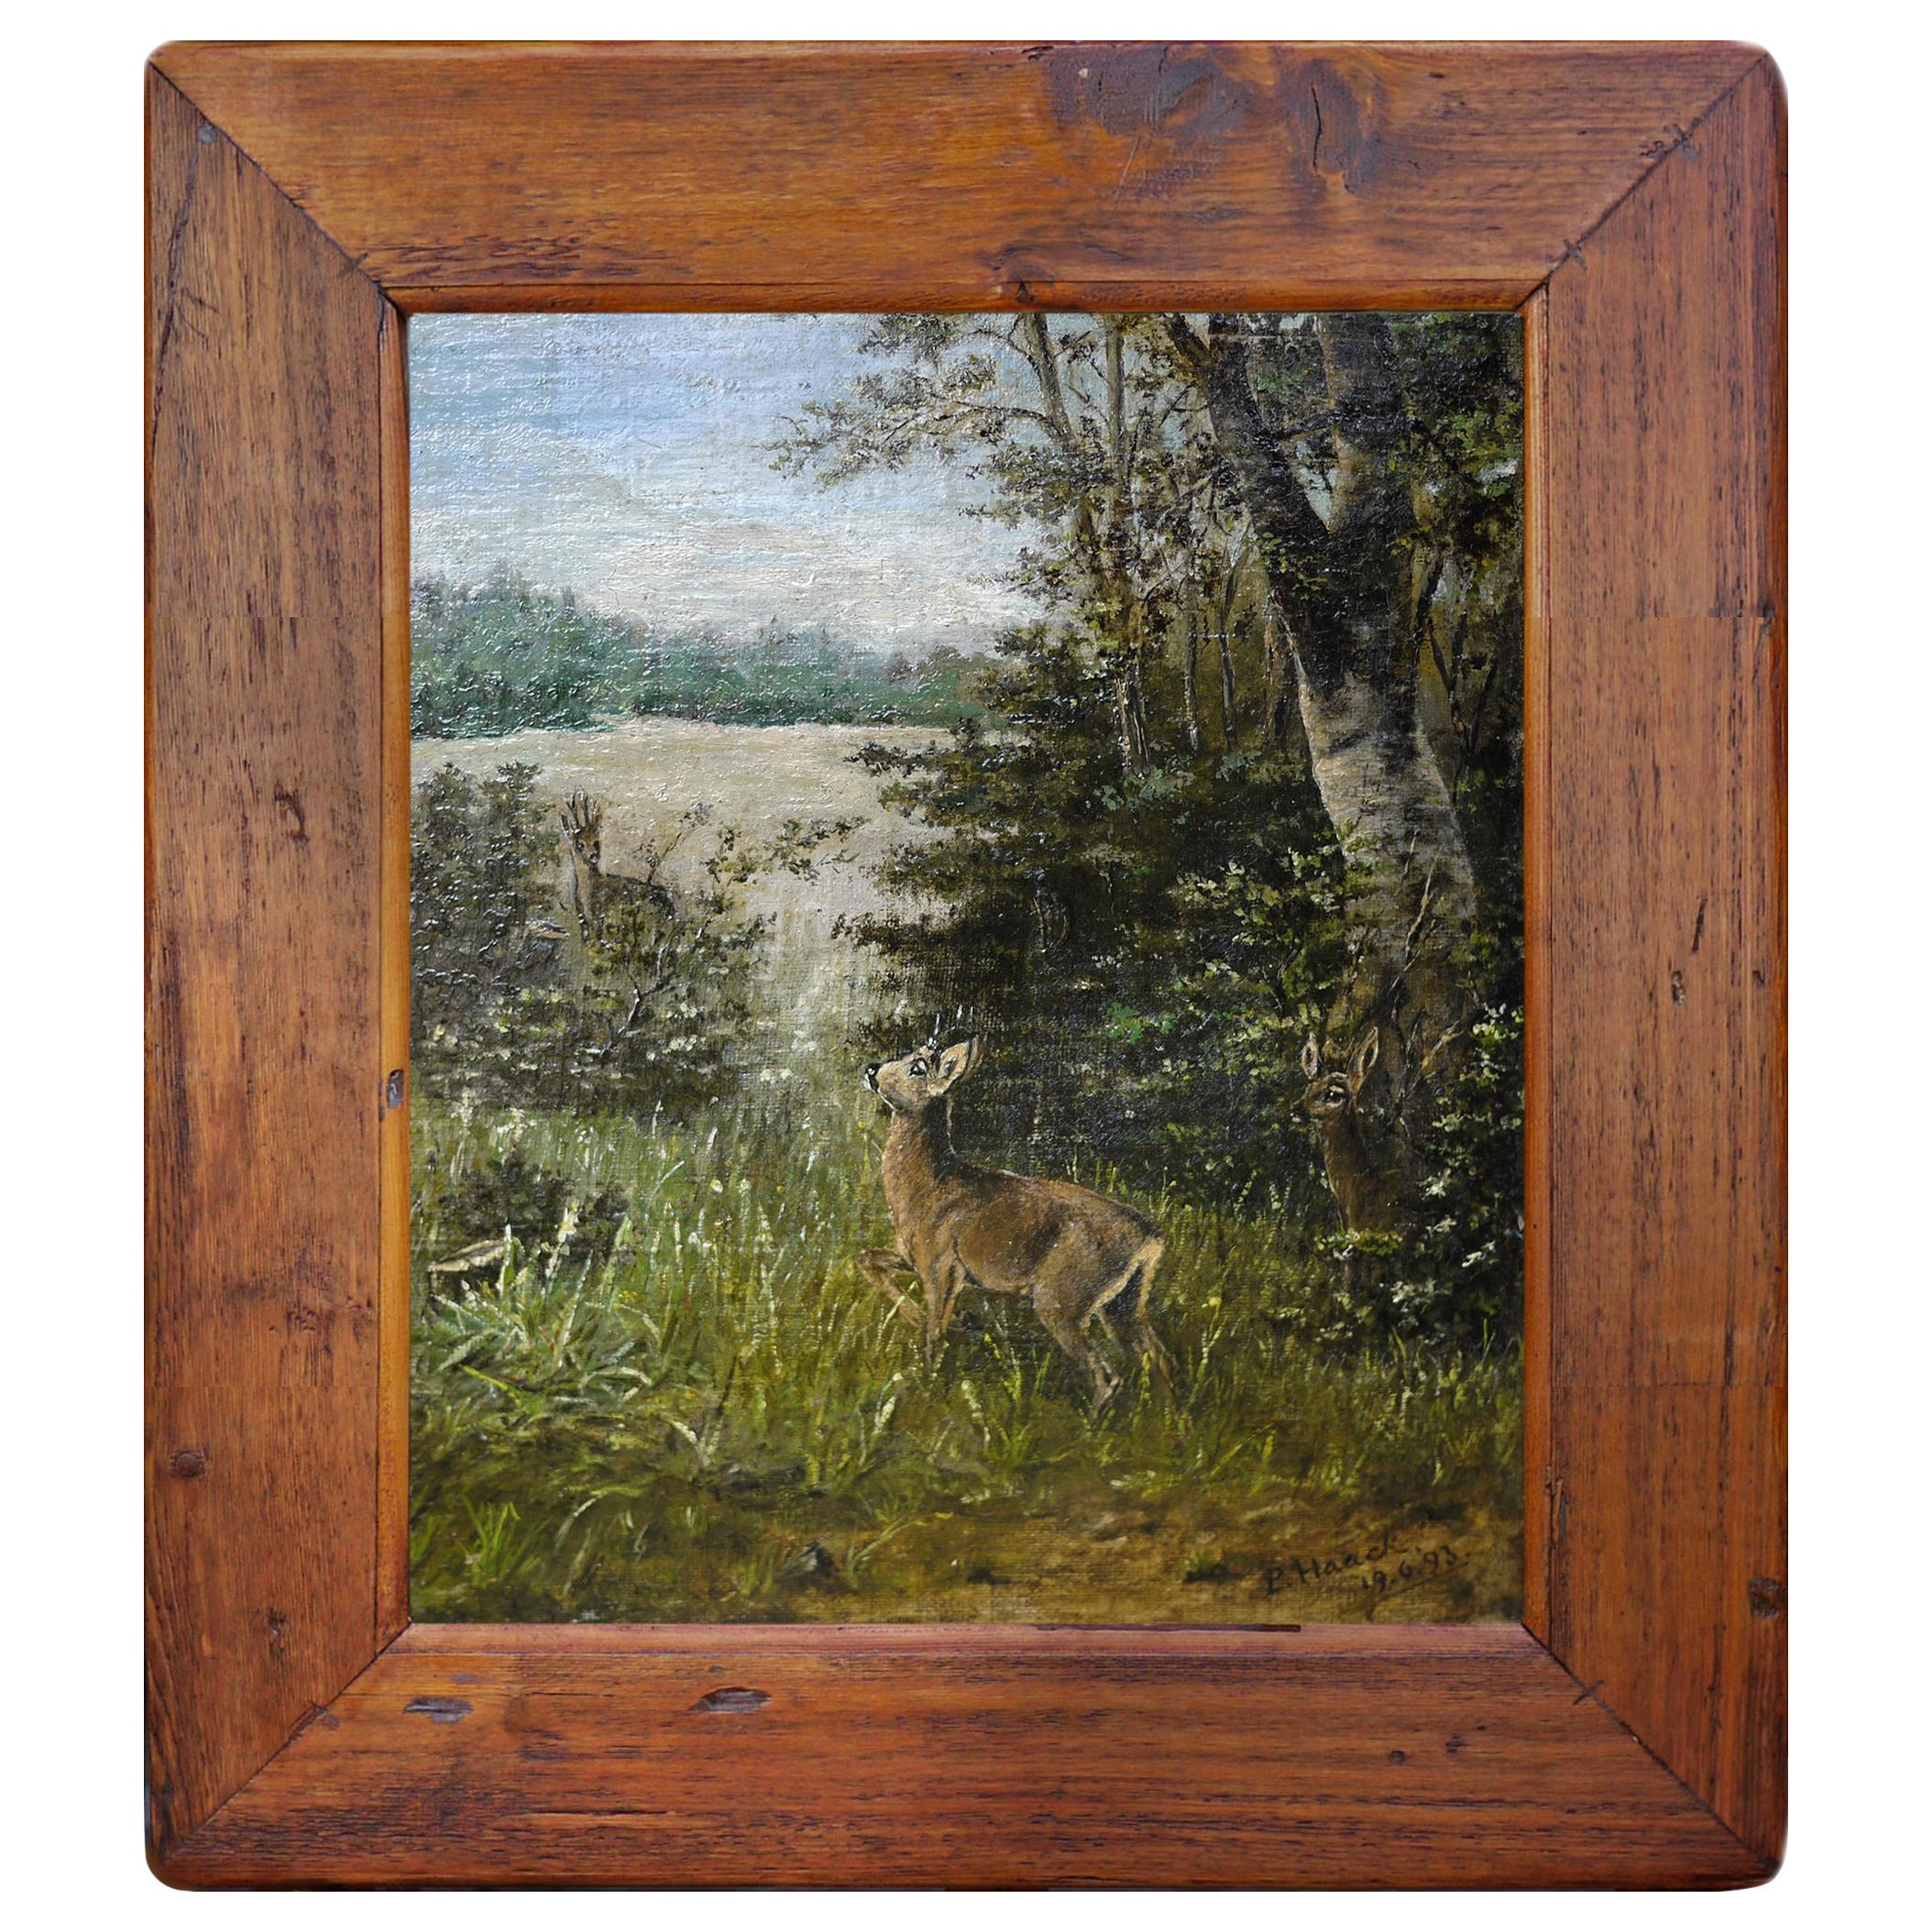 Deer Painting, Animals Oil on Canvas by P. Haack, 1893